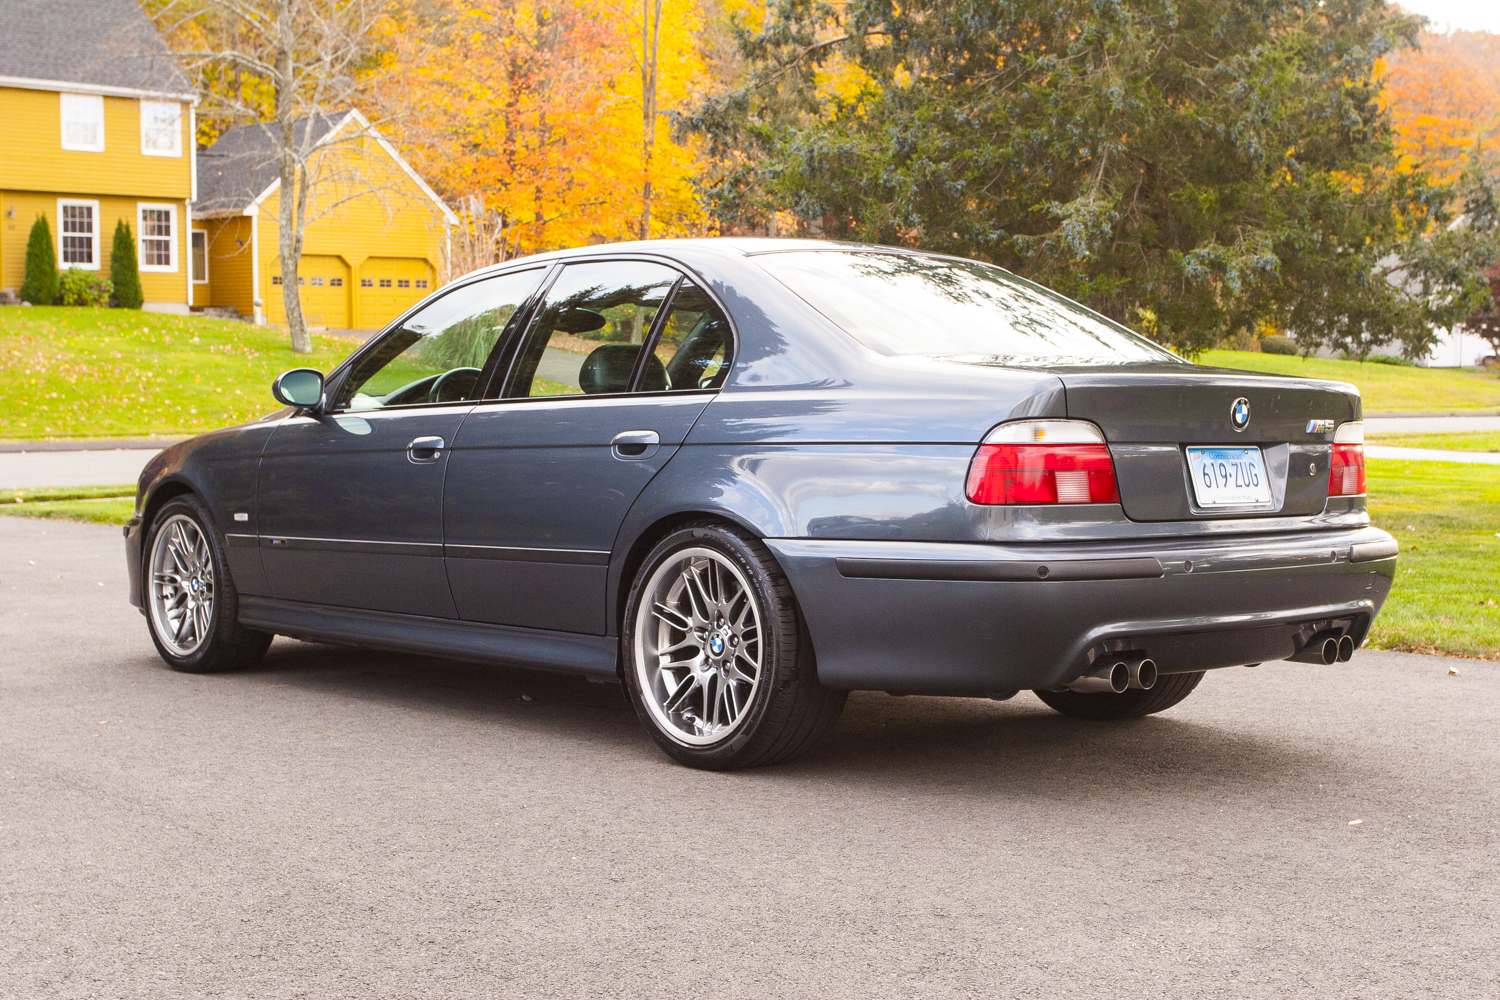 2000 E39 M5 for sale in CT-img_8302.jpg